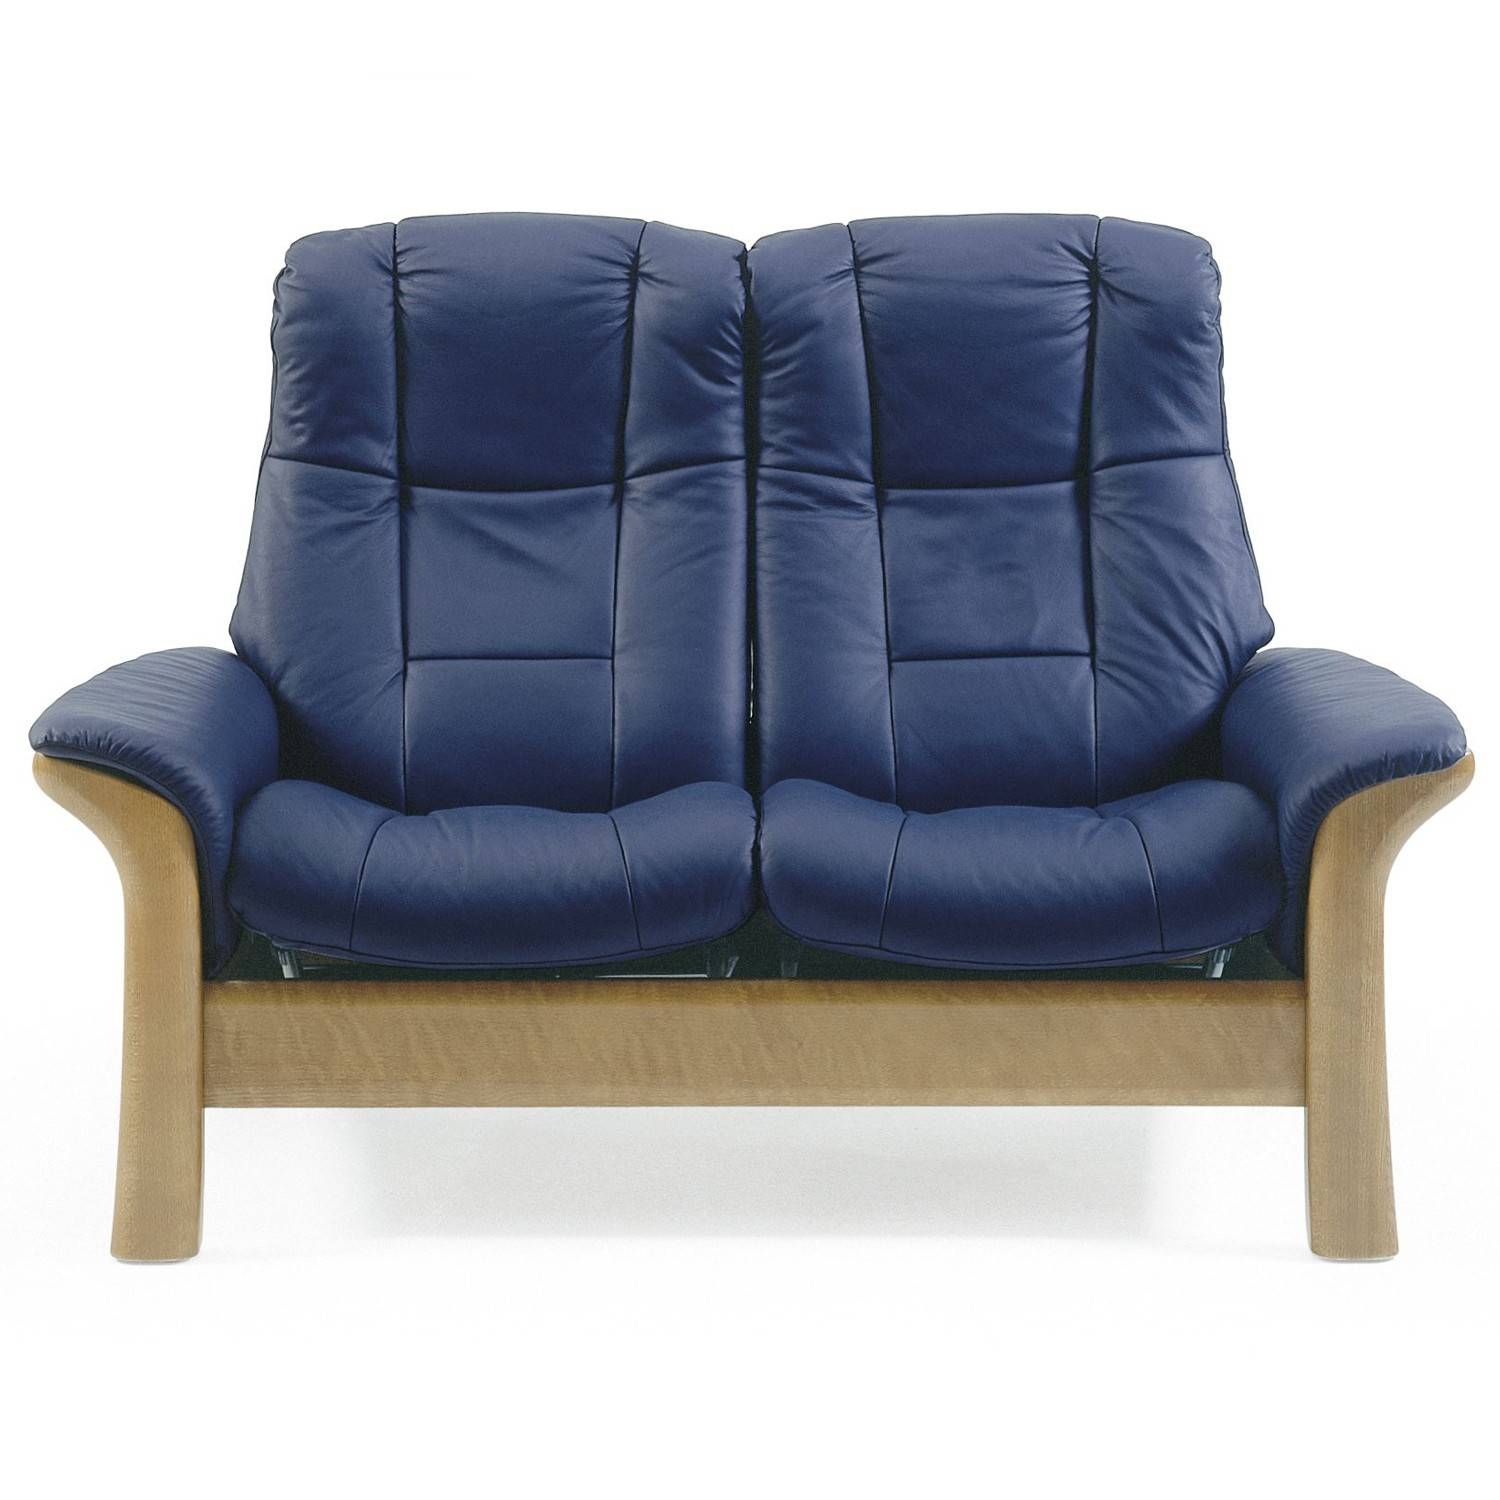 Stressless Windsor High Back 2 Seater Sofa | Leekes throughout Windsor Sofas (Image 12 of 30)